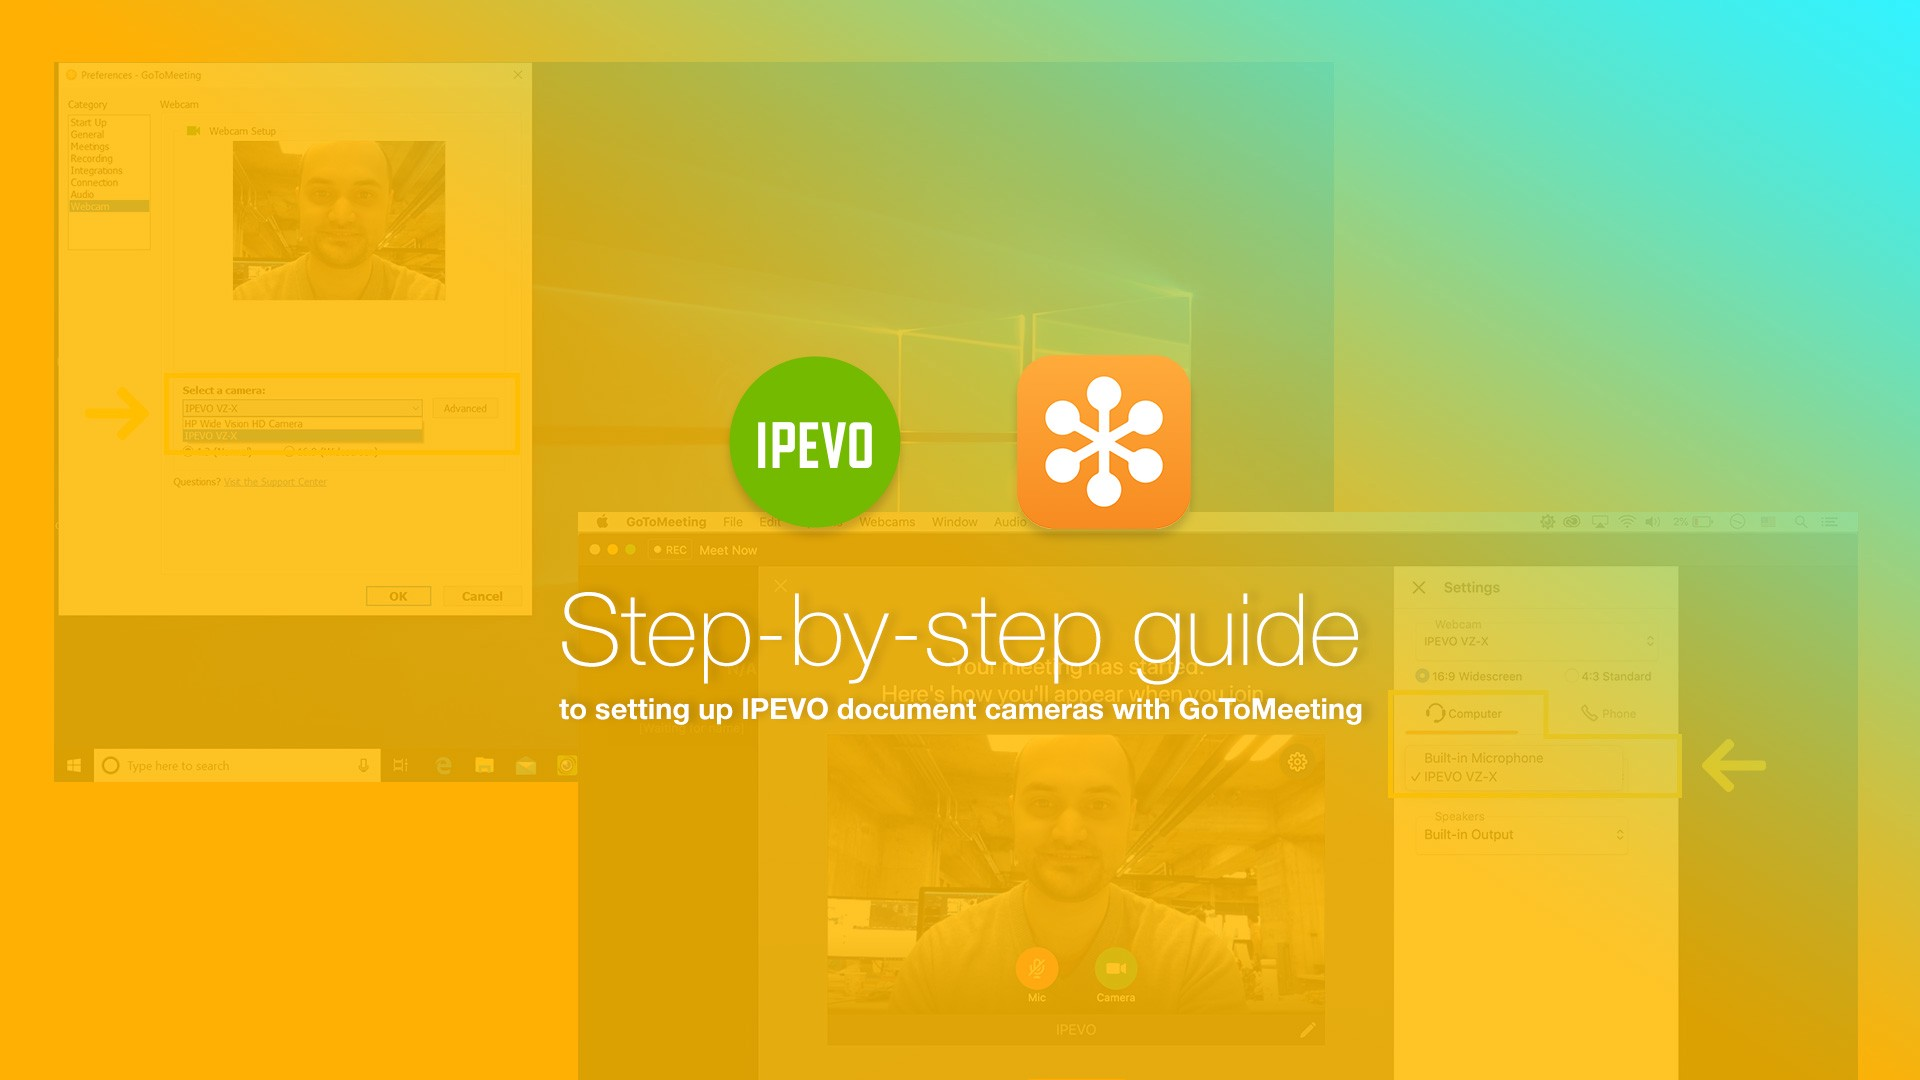 Step-by-step guide to setting up IPEVO document cameras with GoToMeeting